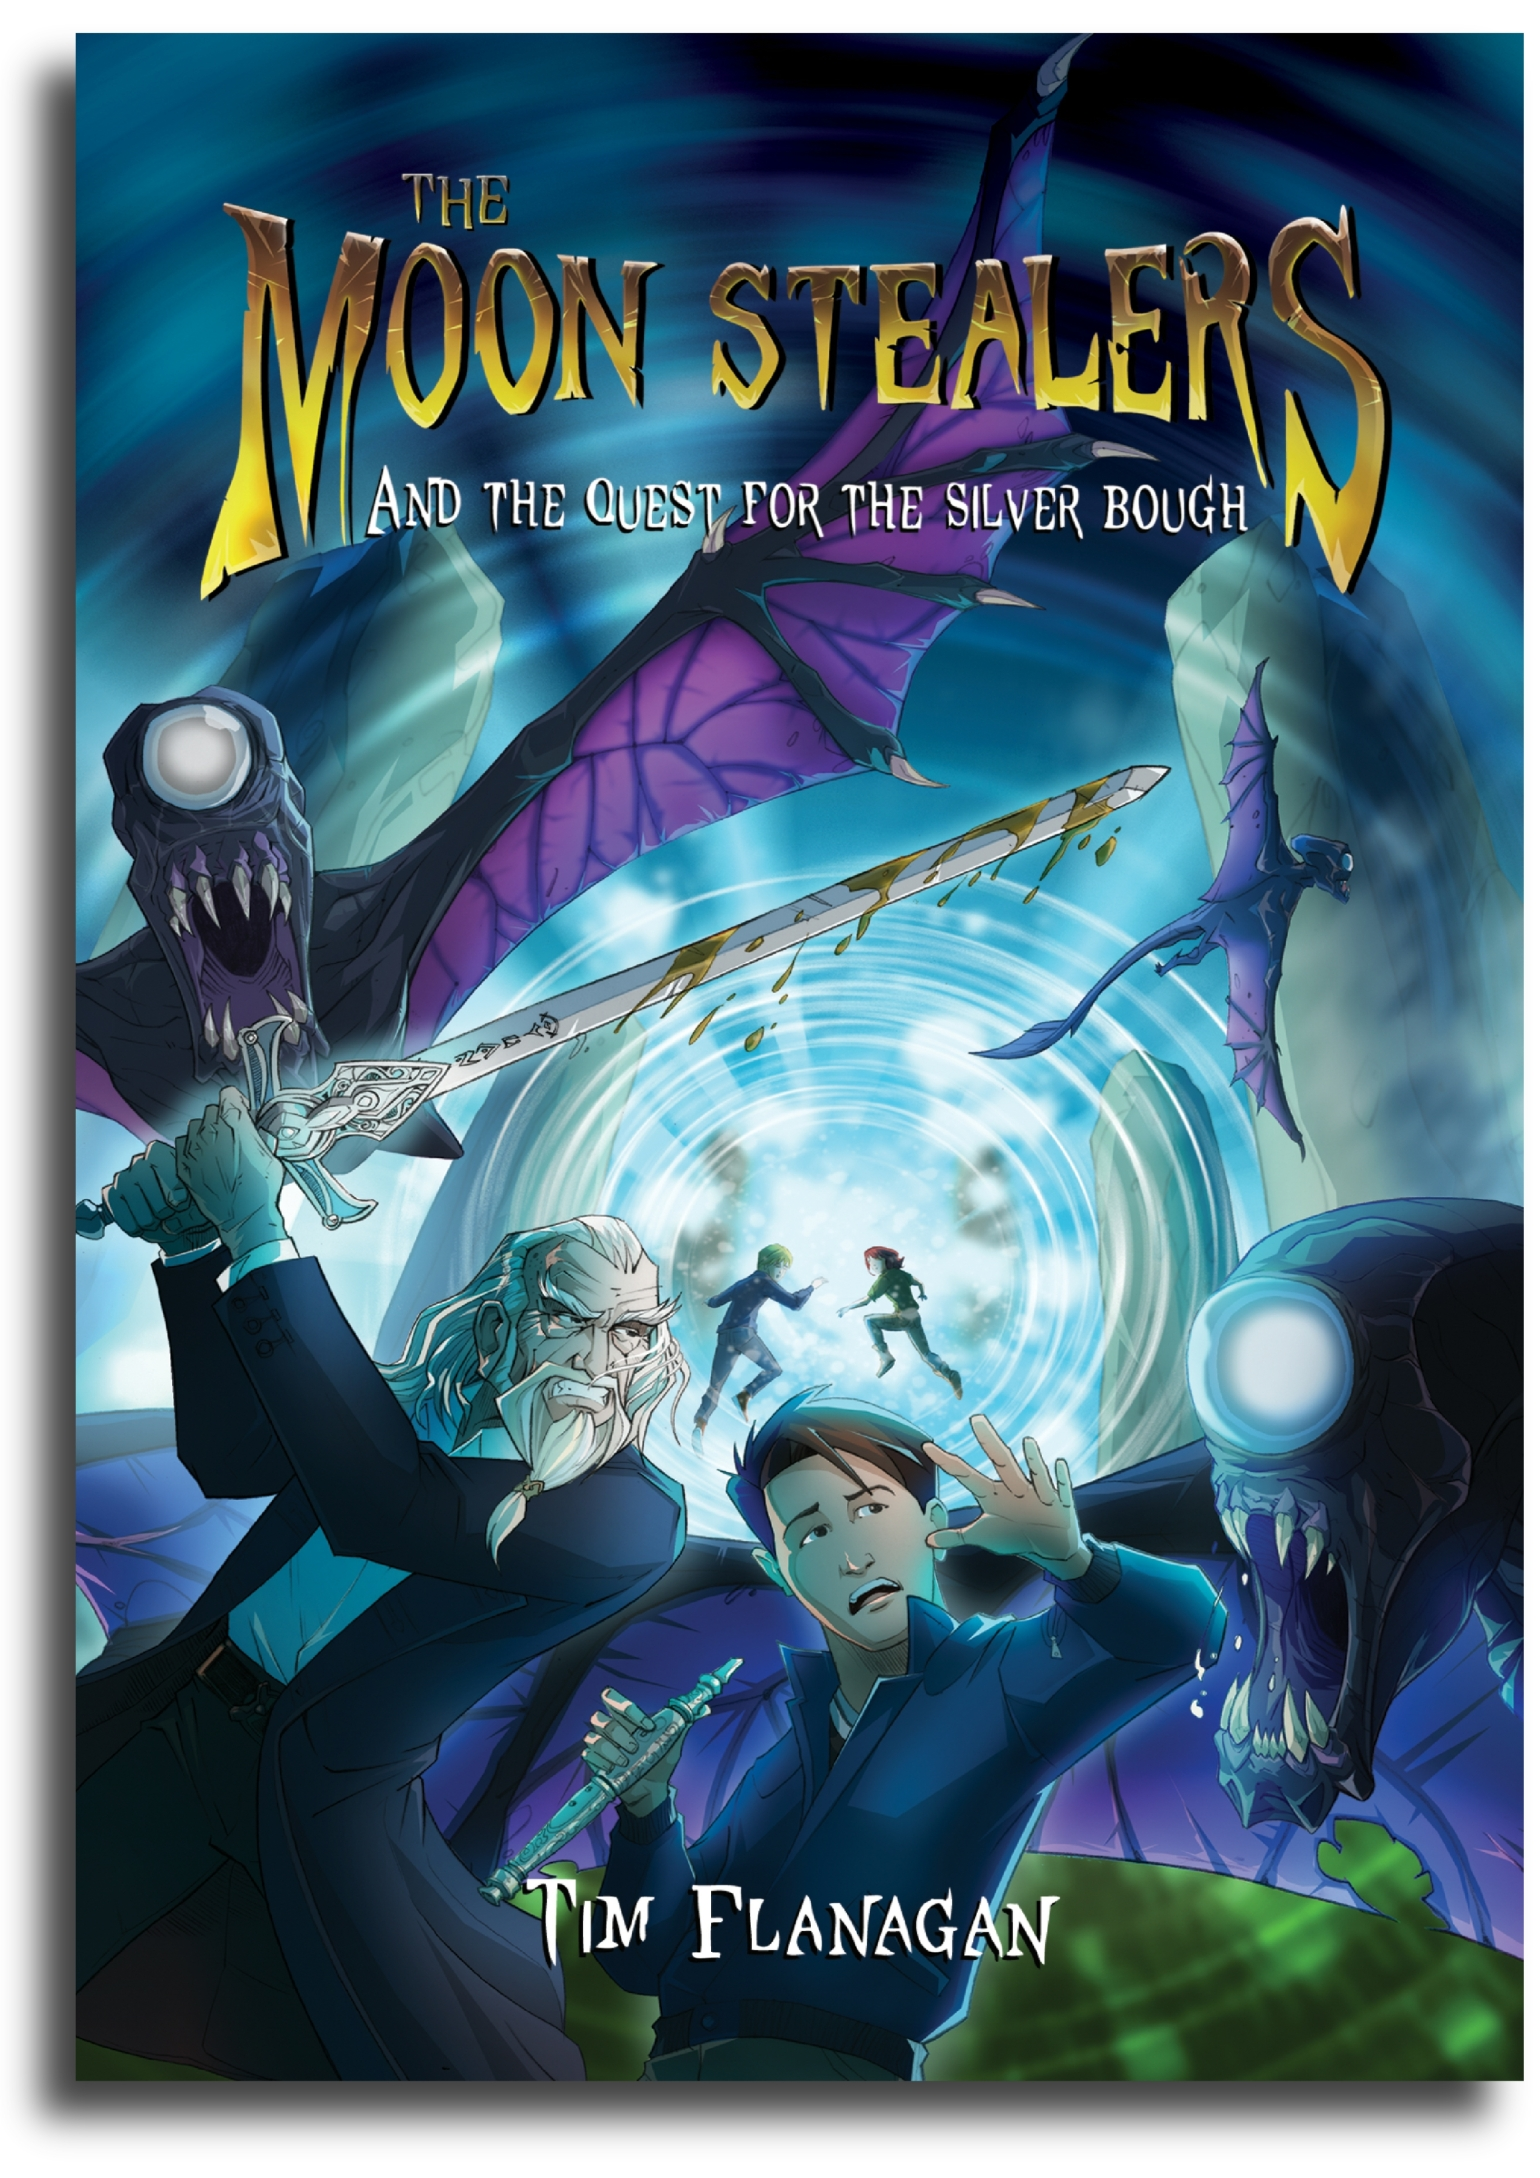 The Quest for the Silver Bough (The Moon Stealers Book 1)